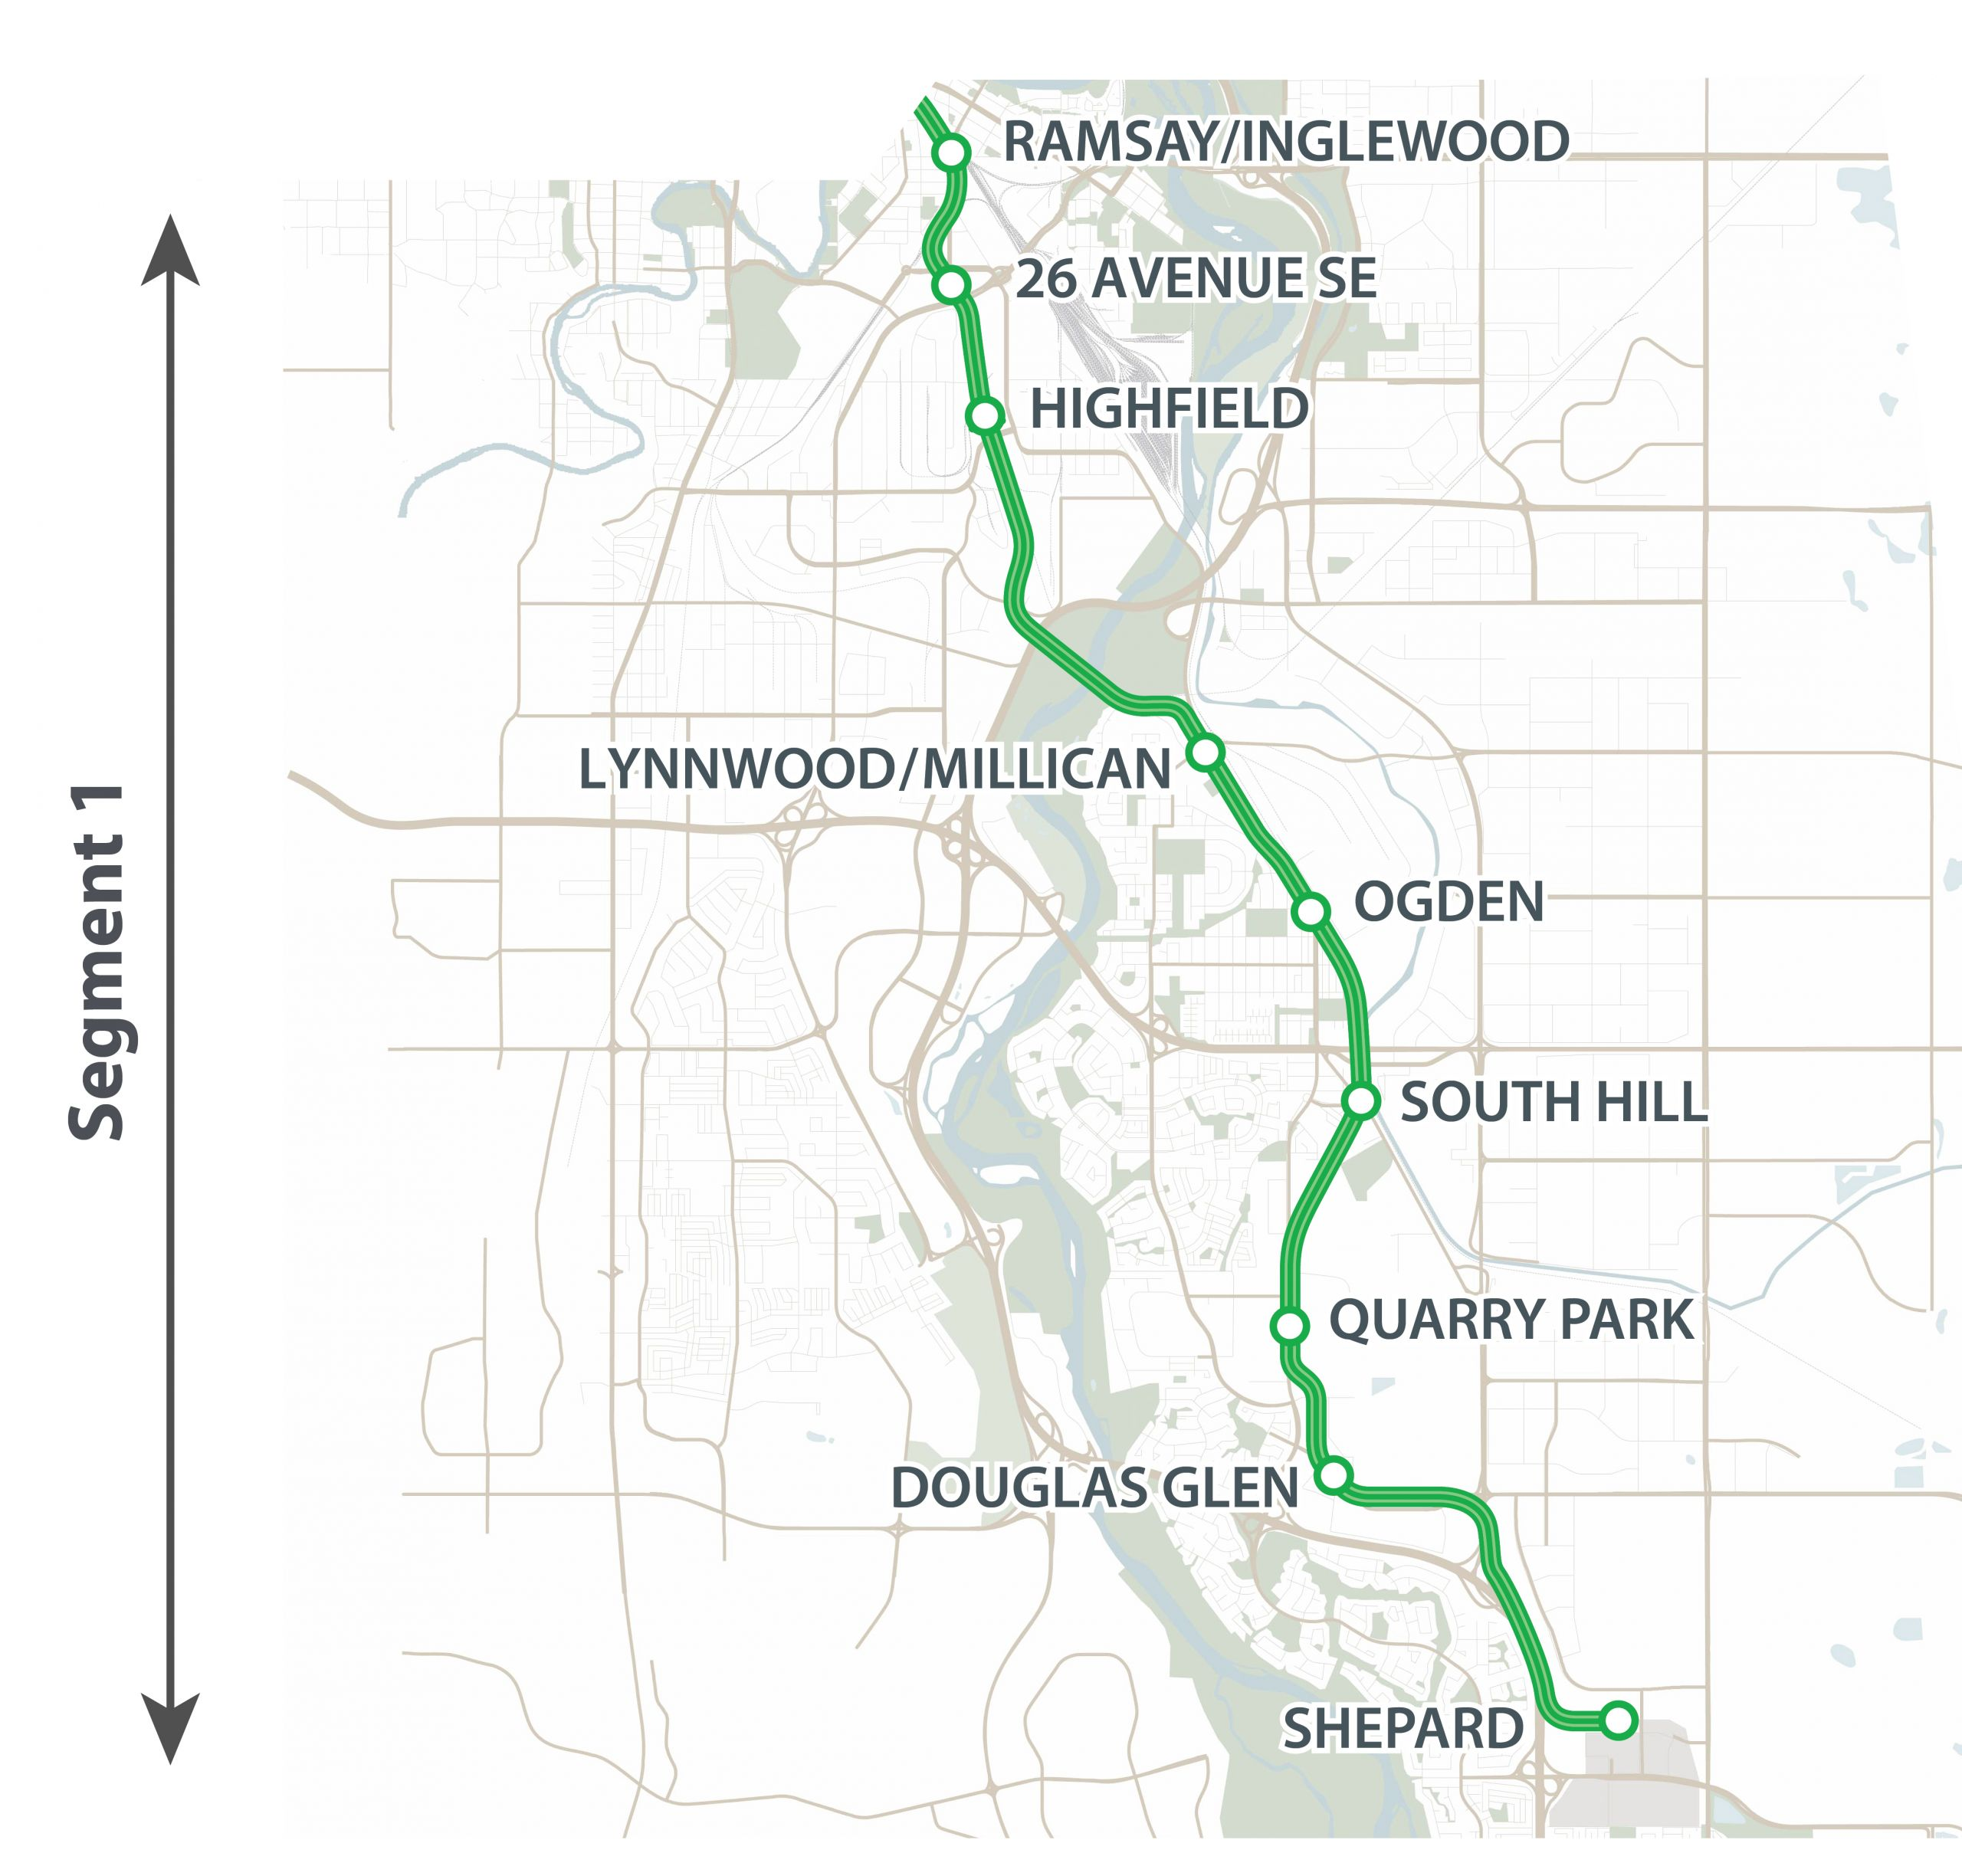 This map shows Segment 1 of the Green Line LRT. Segment 1 runs from the Elbow River to Shepard (126 Ave S.E.).